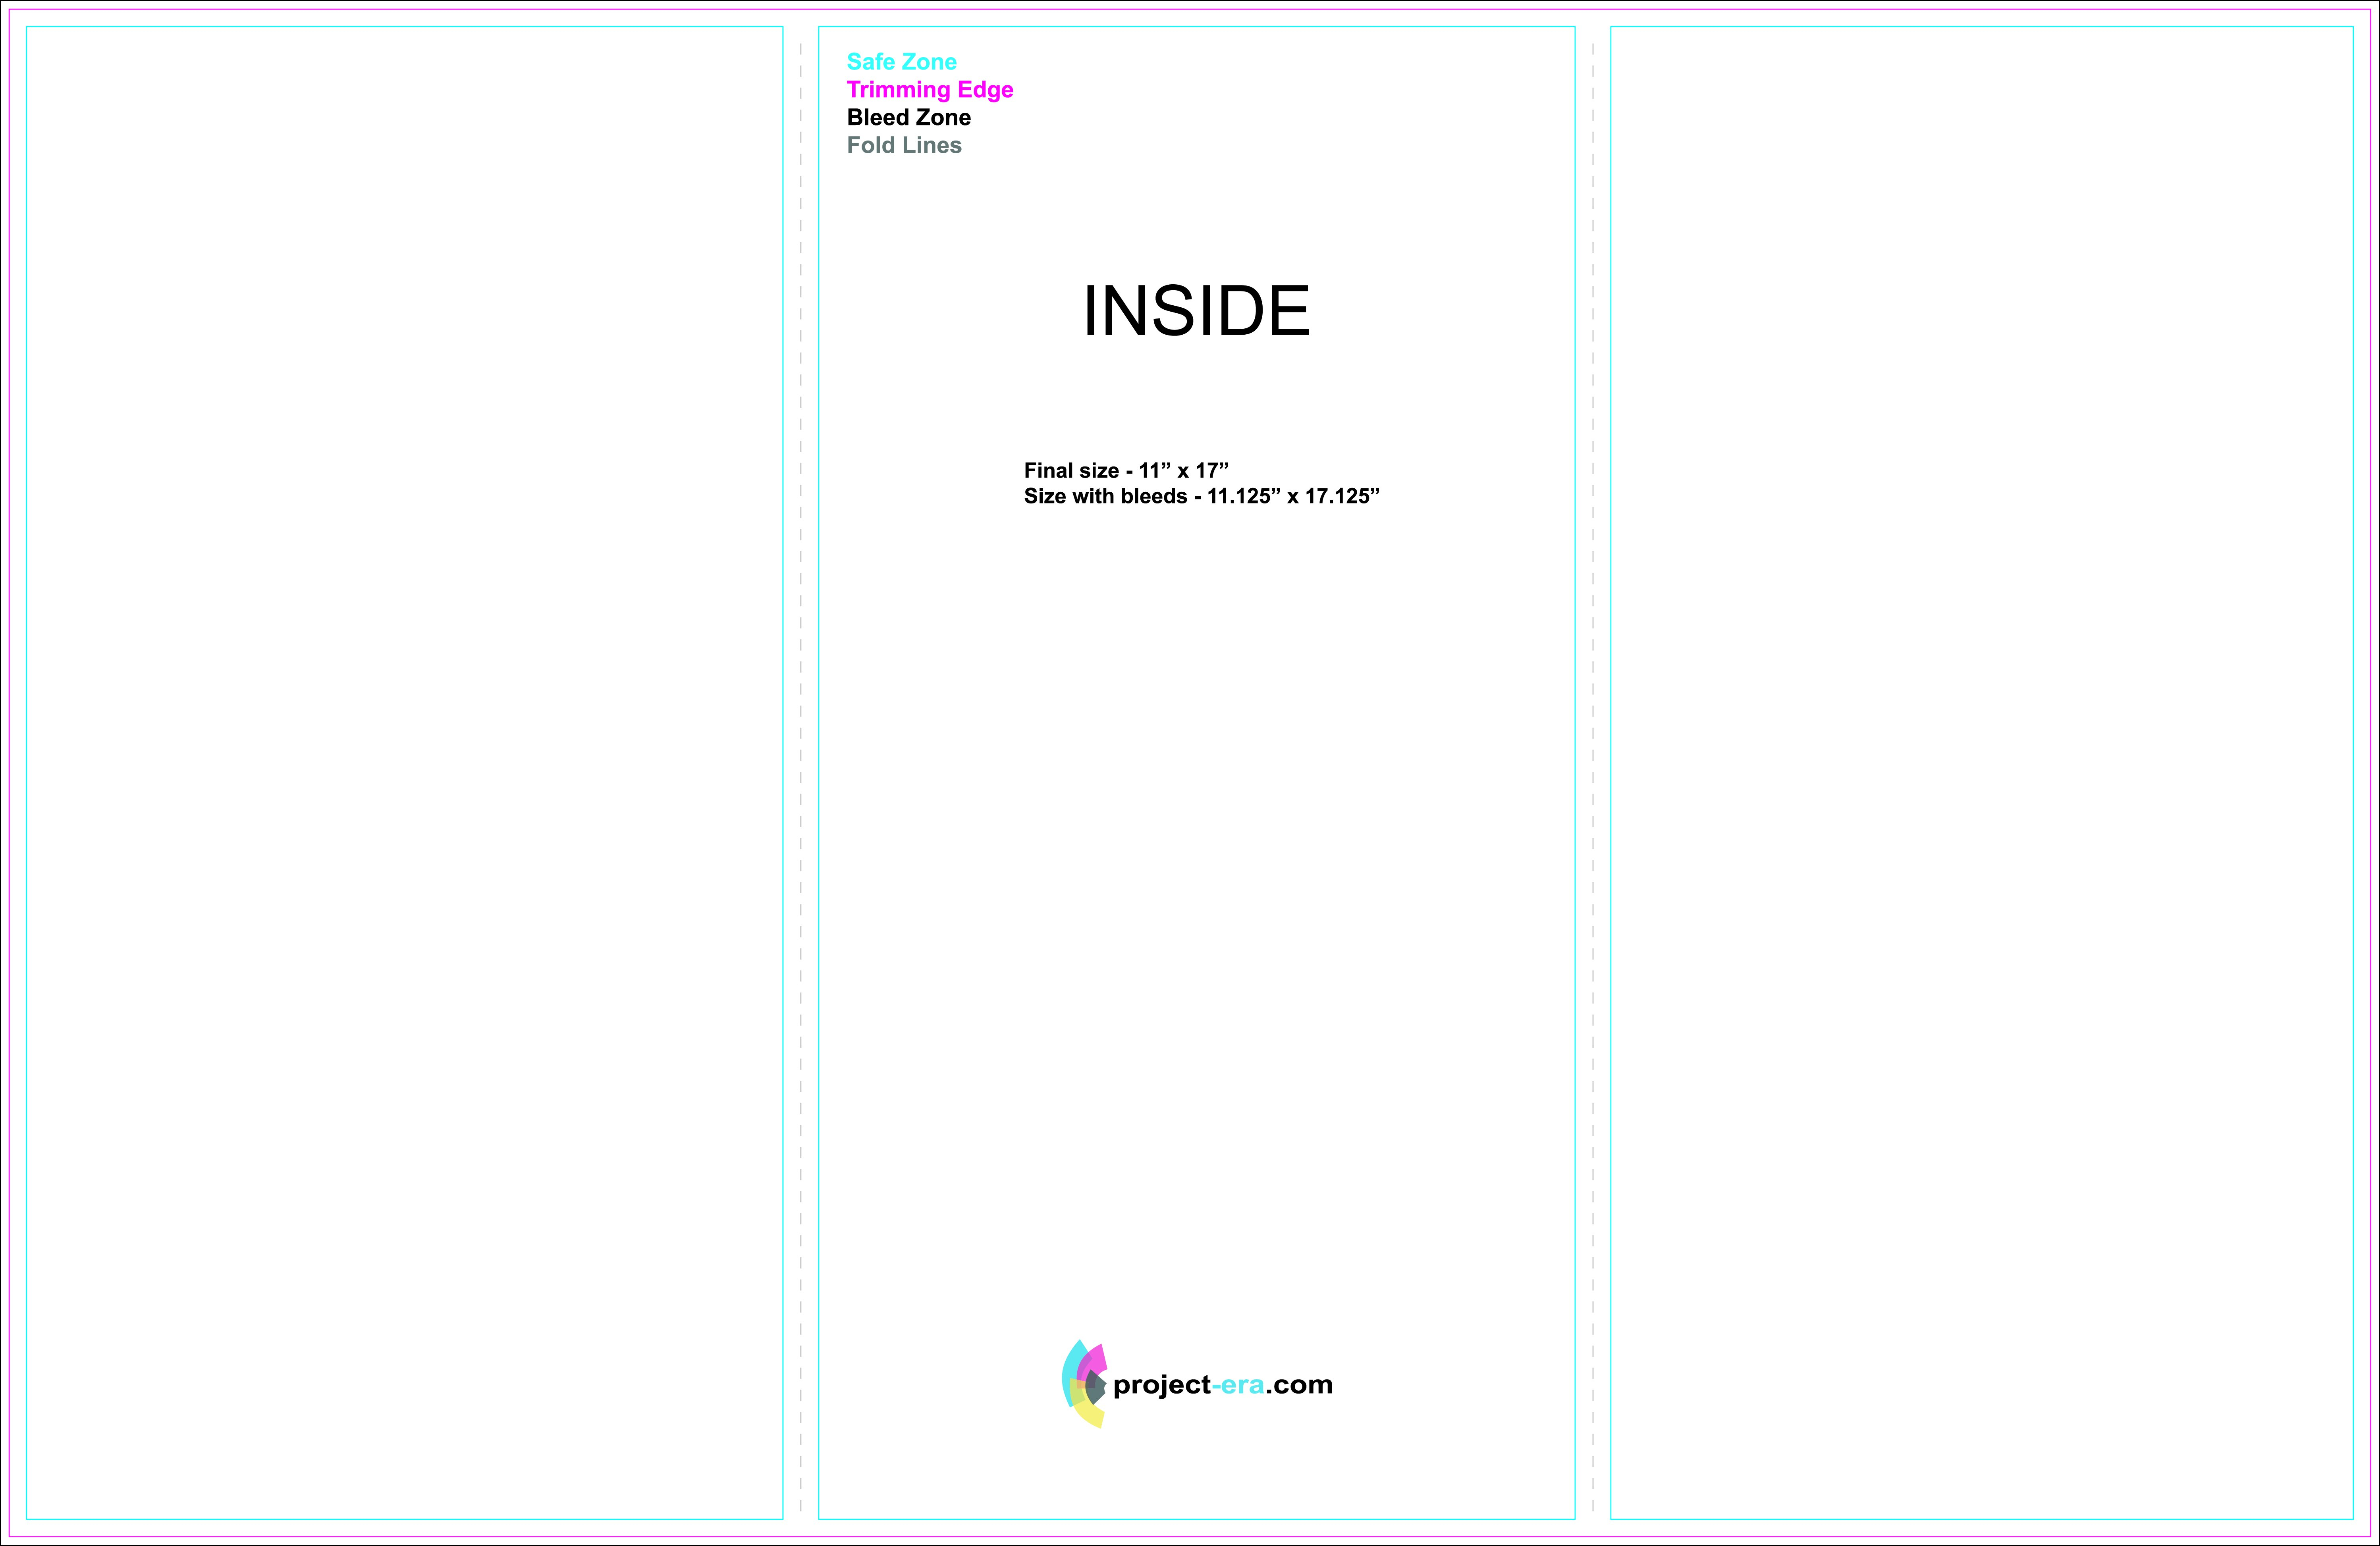 Projectera  Print  Design Services  Print Templates Intended For Tri Fold Brochure Template Illustrator